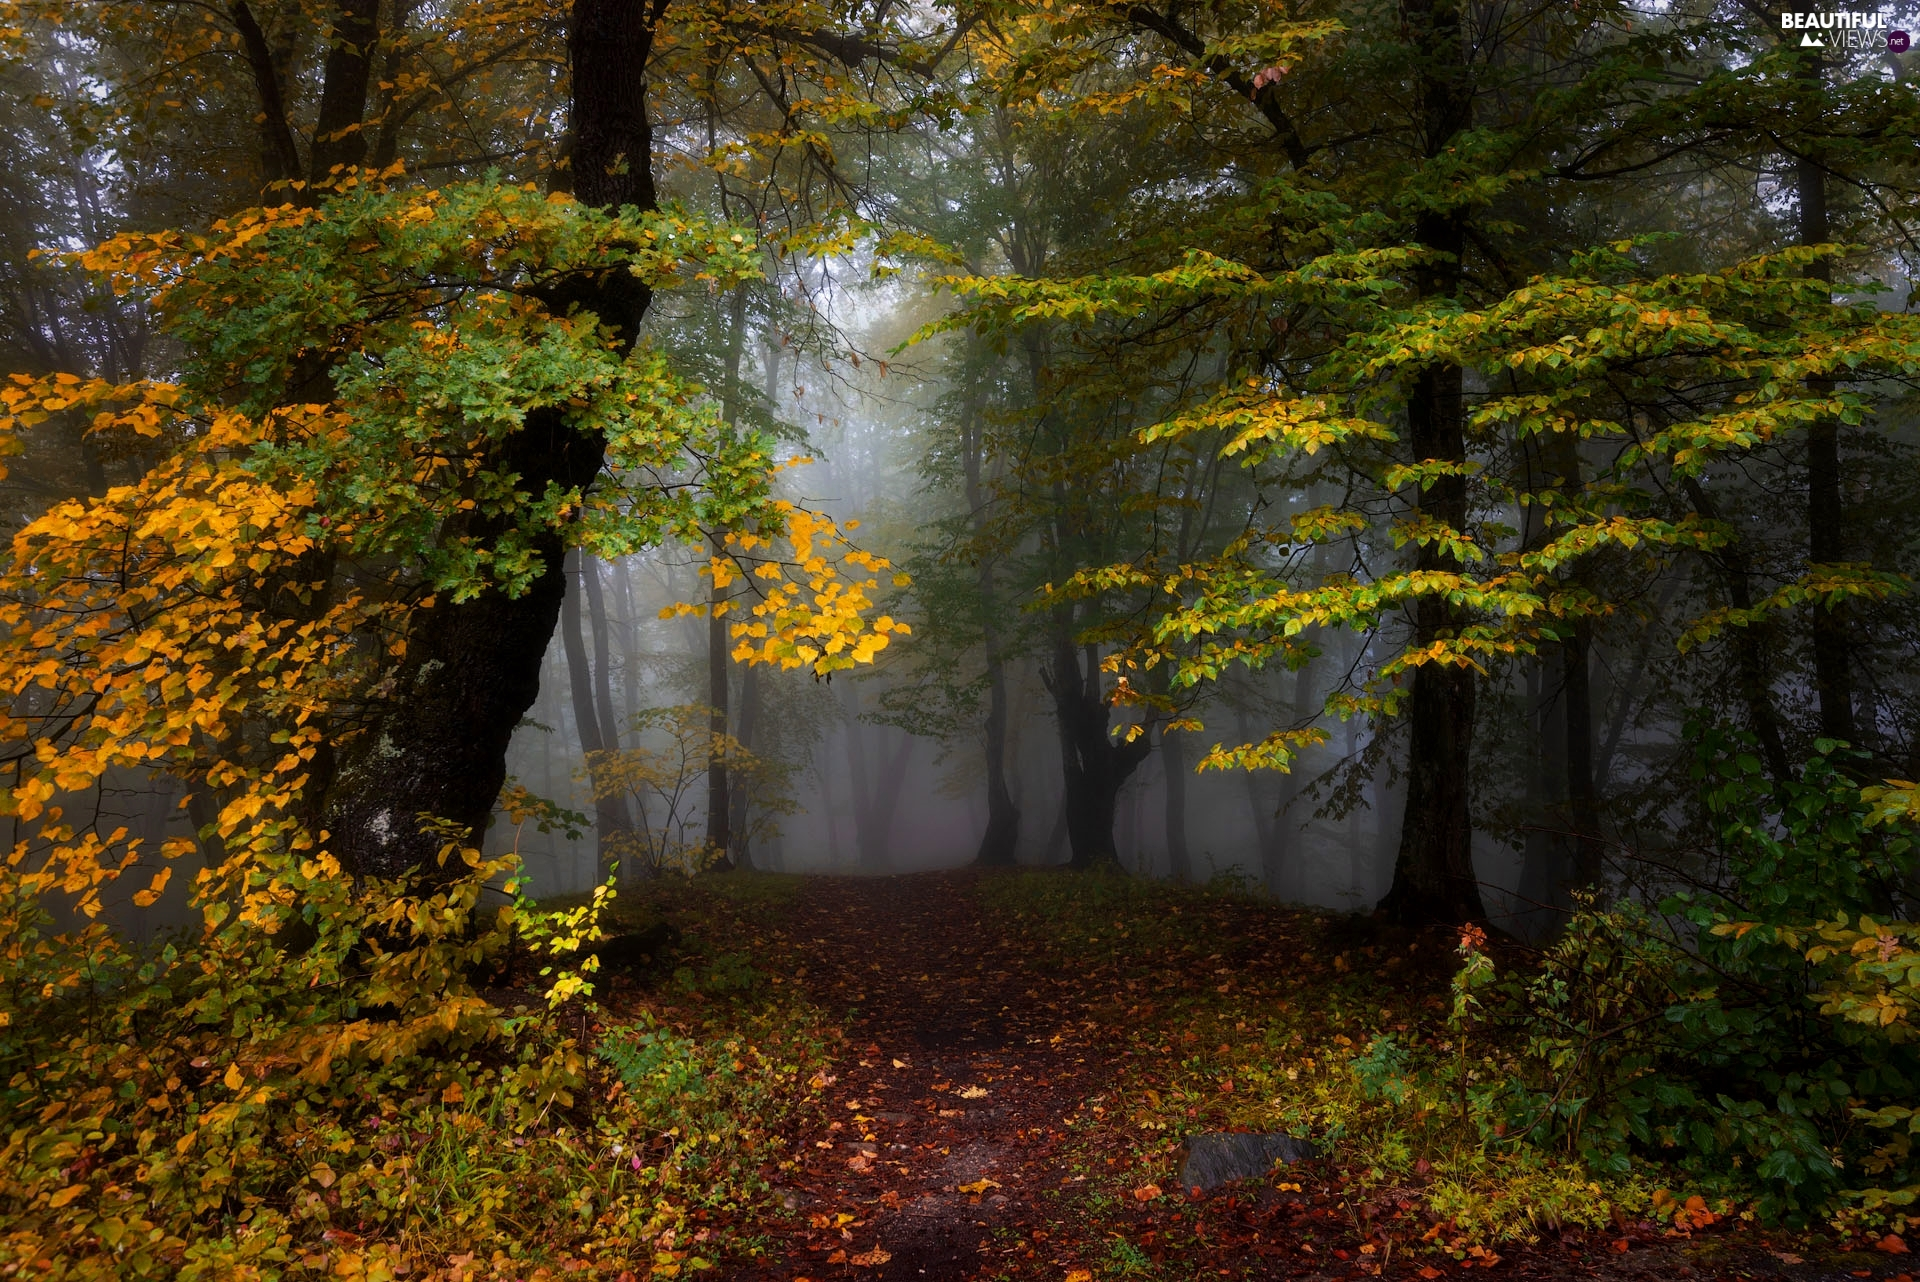 trees, forest, Yellowed, Fog, autumn, viewes, Leaf